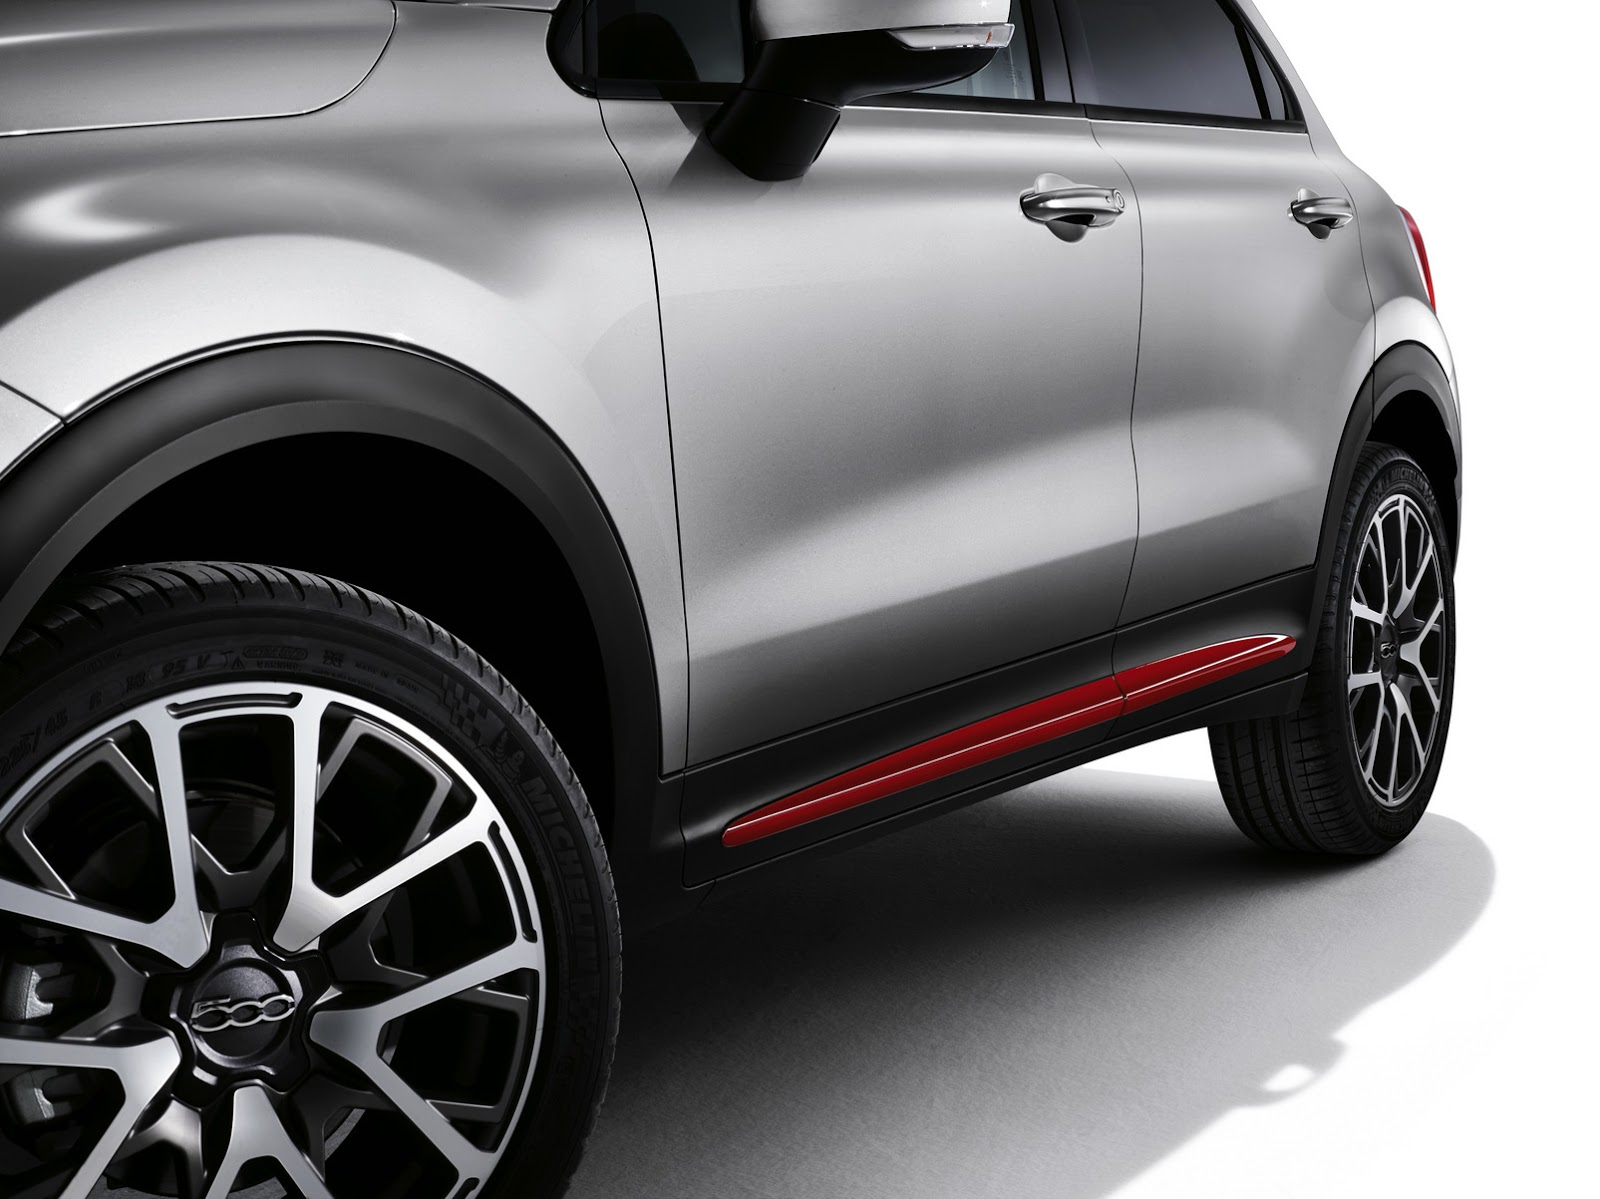 Fiat 500X Mopar red side moulding